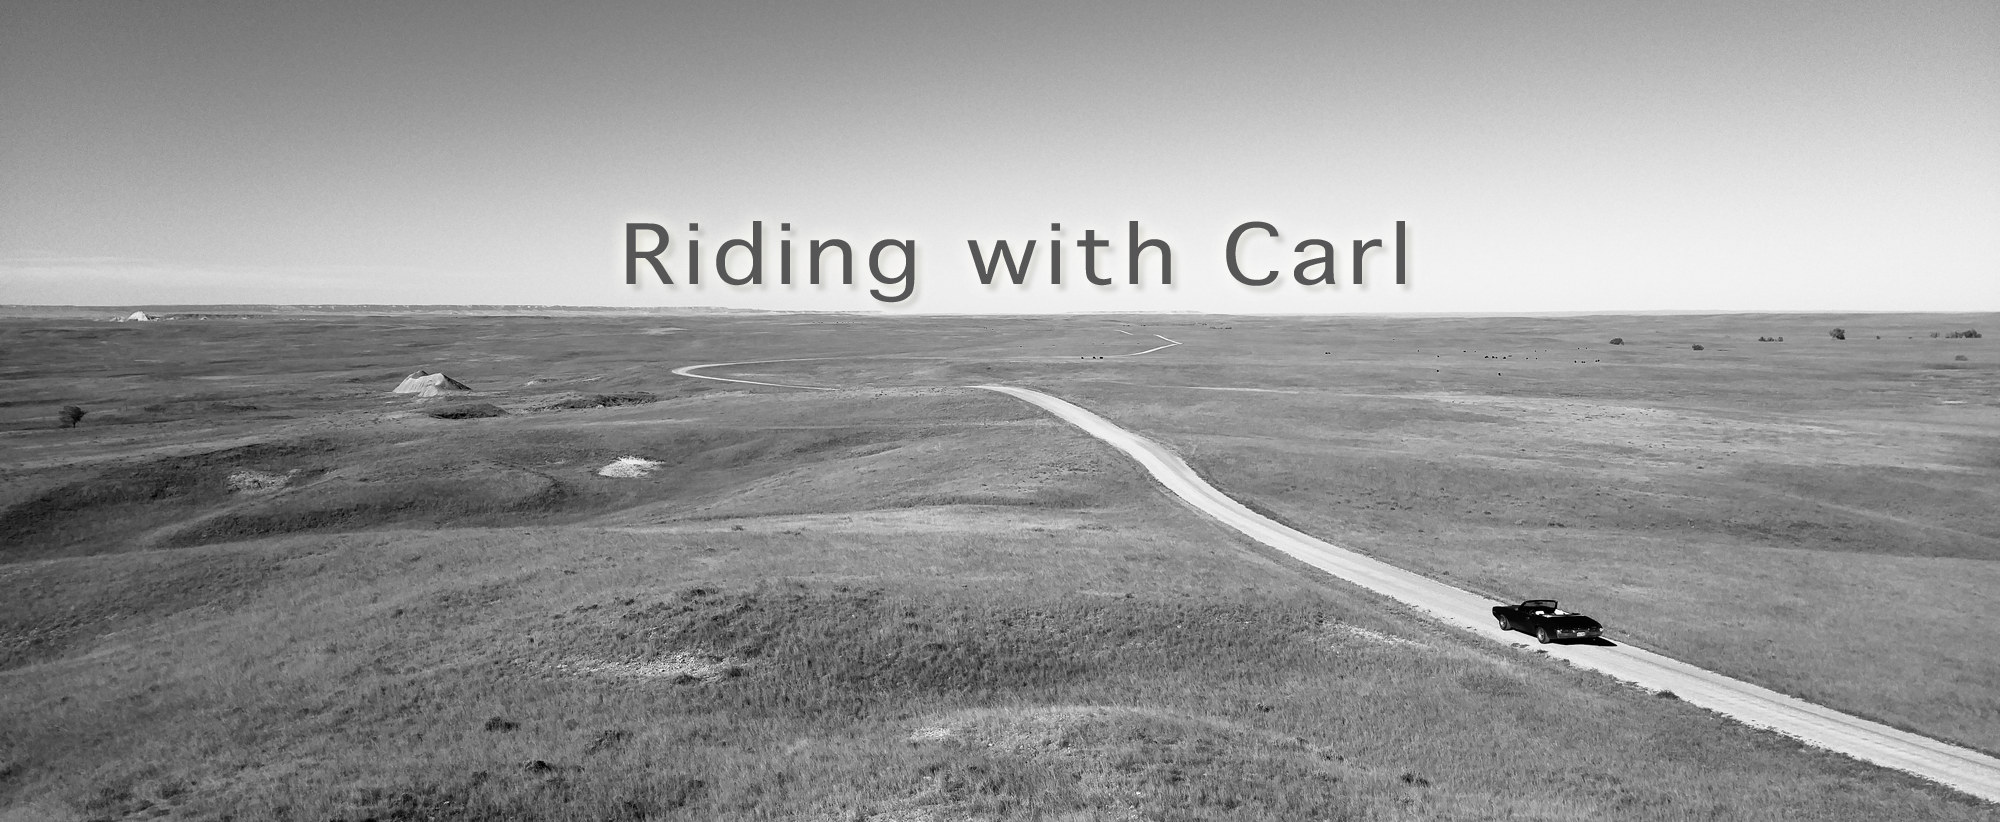 Riding with Carl